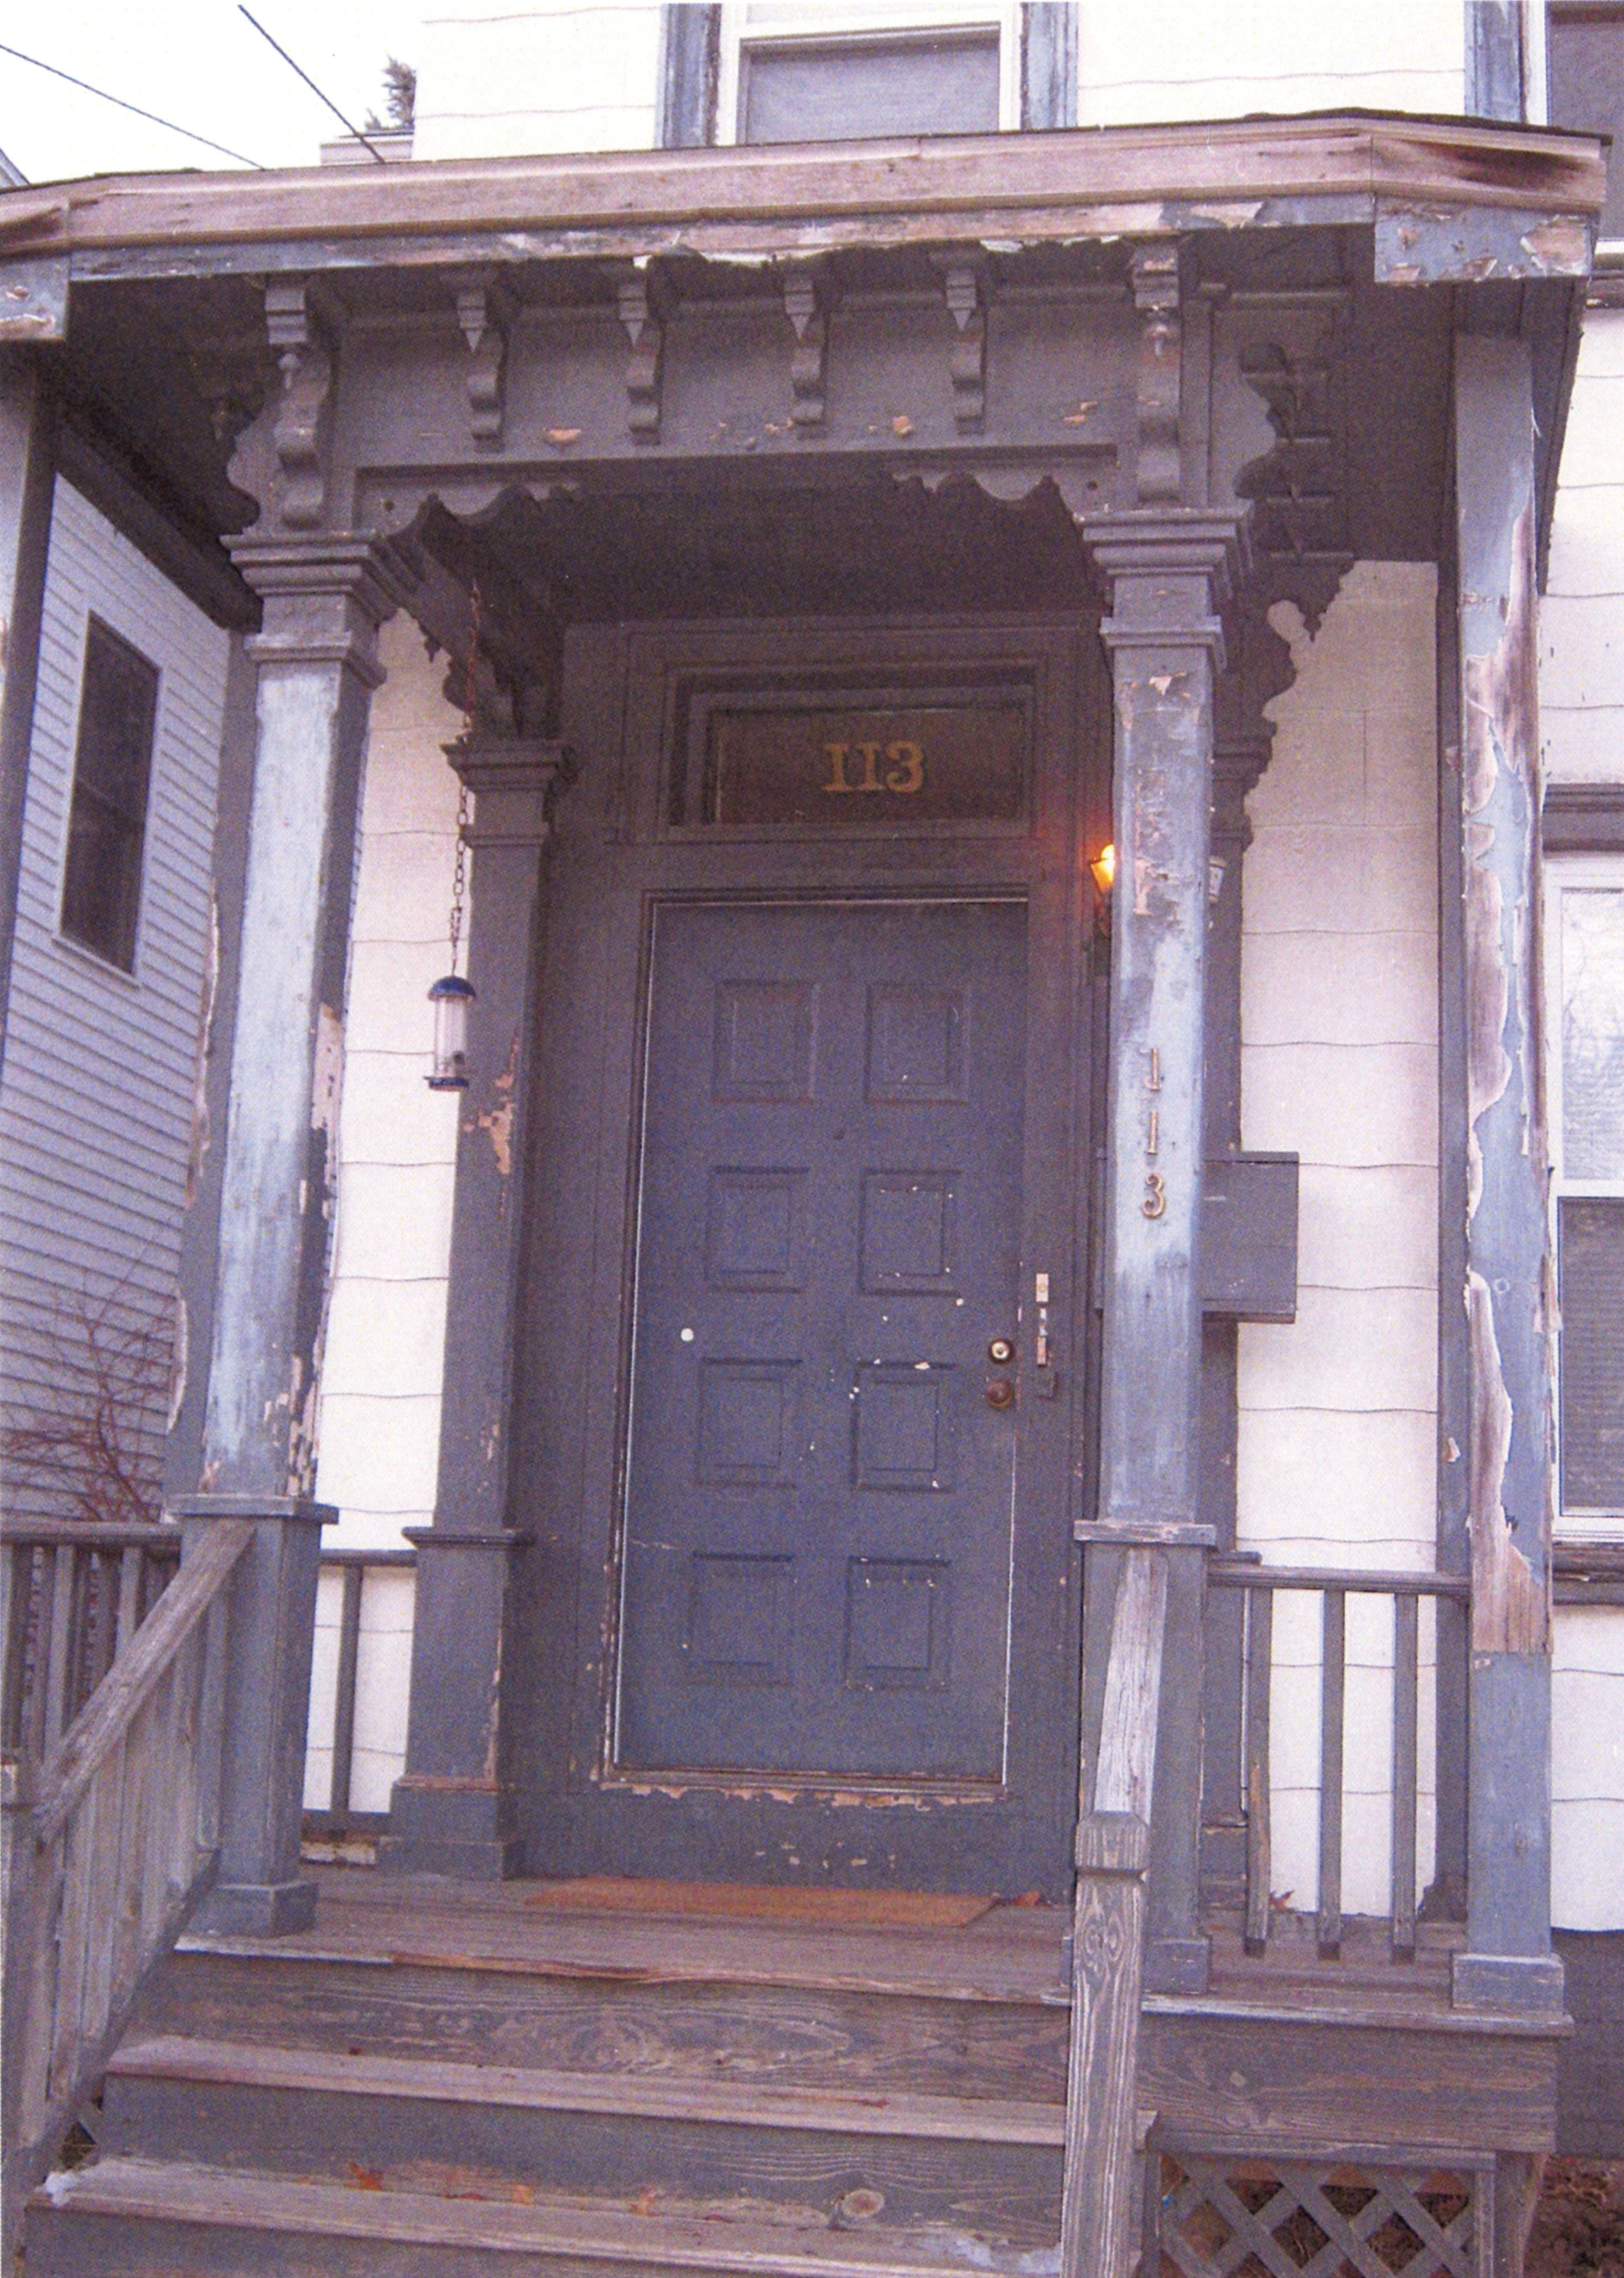 Before : 113 Lawrence Street